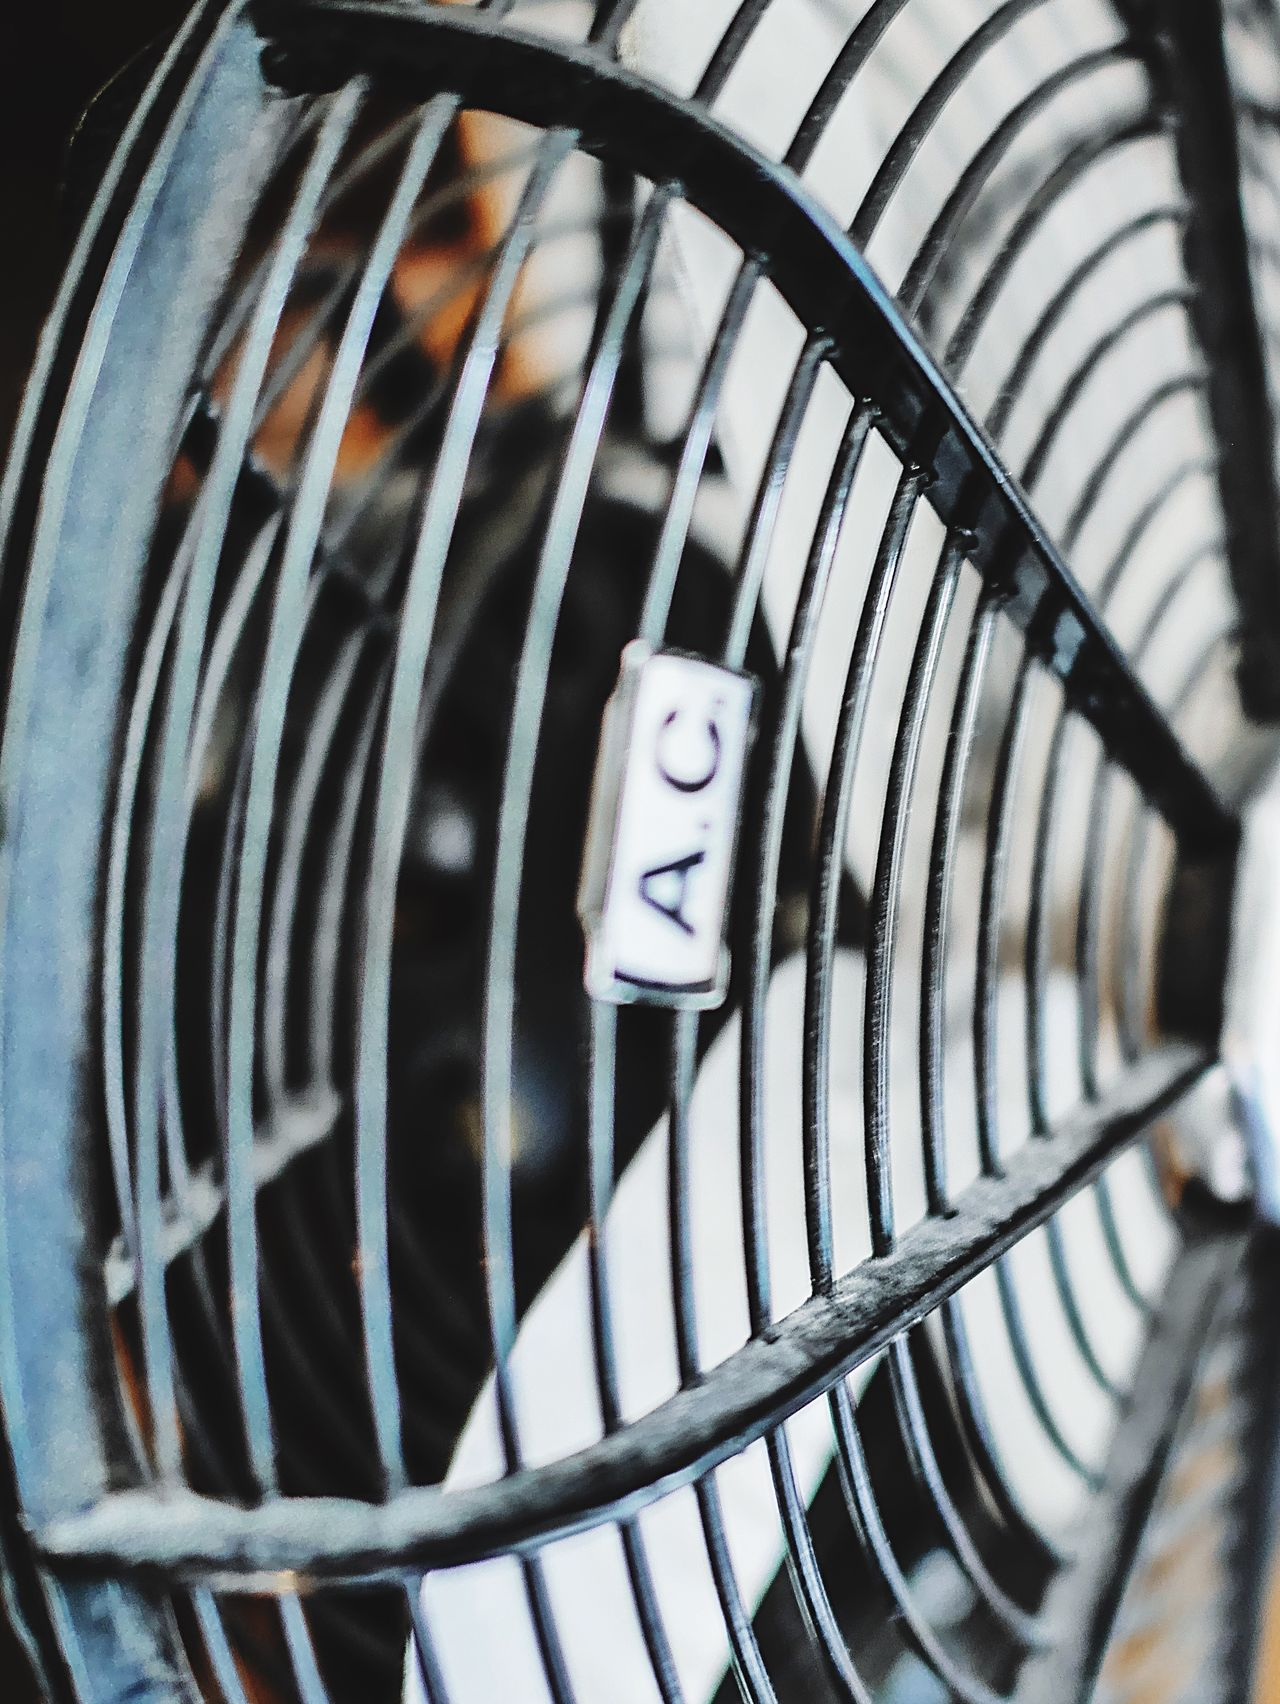 Ac Air Fan Airconditioning Aircondition Aircooled Aircooler Interior Detail Detail Pattern Pieces Pattern Shapes And Lines Lines LINE Object Photography Still Life